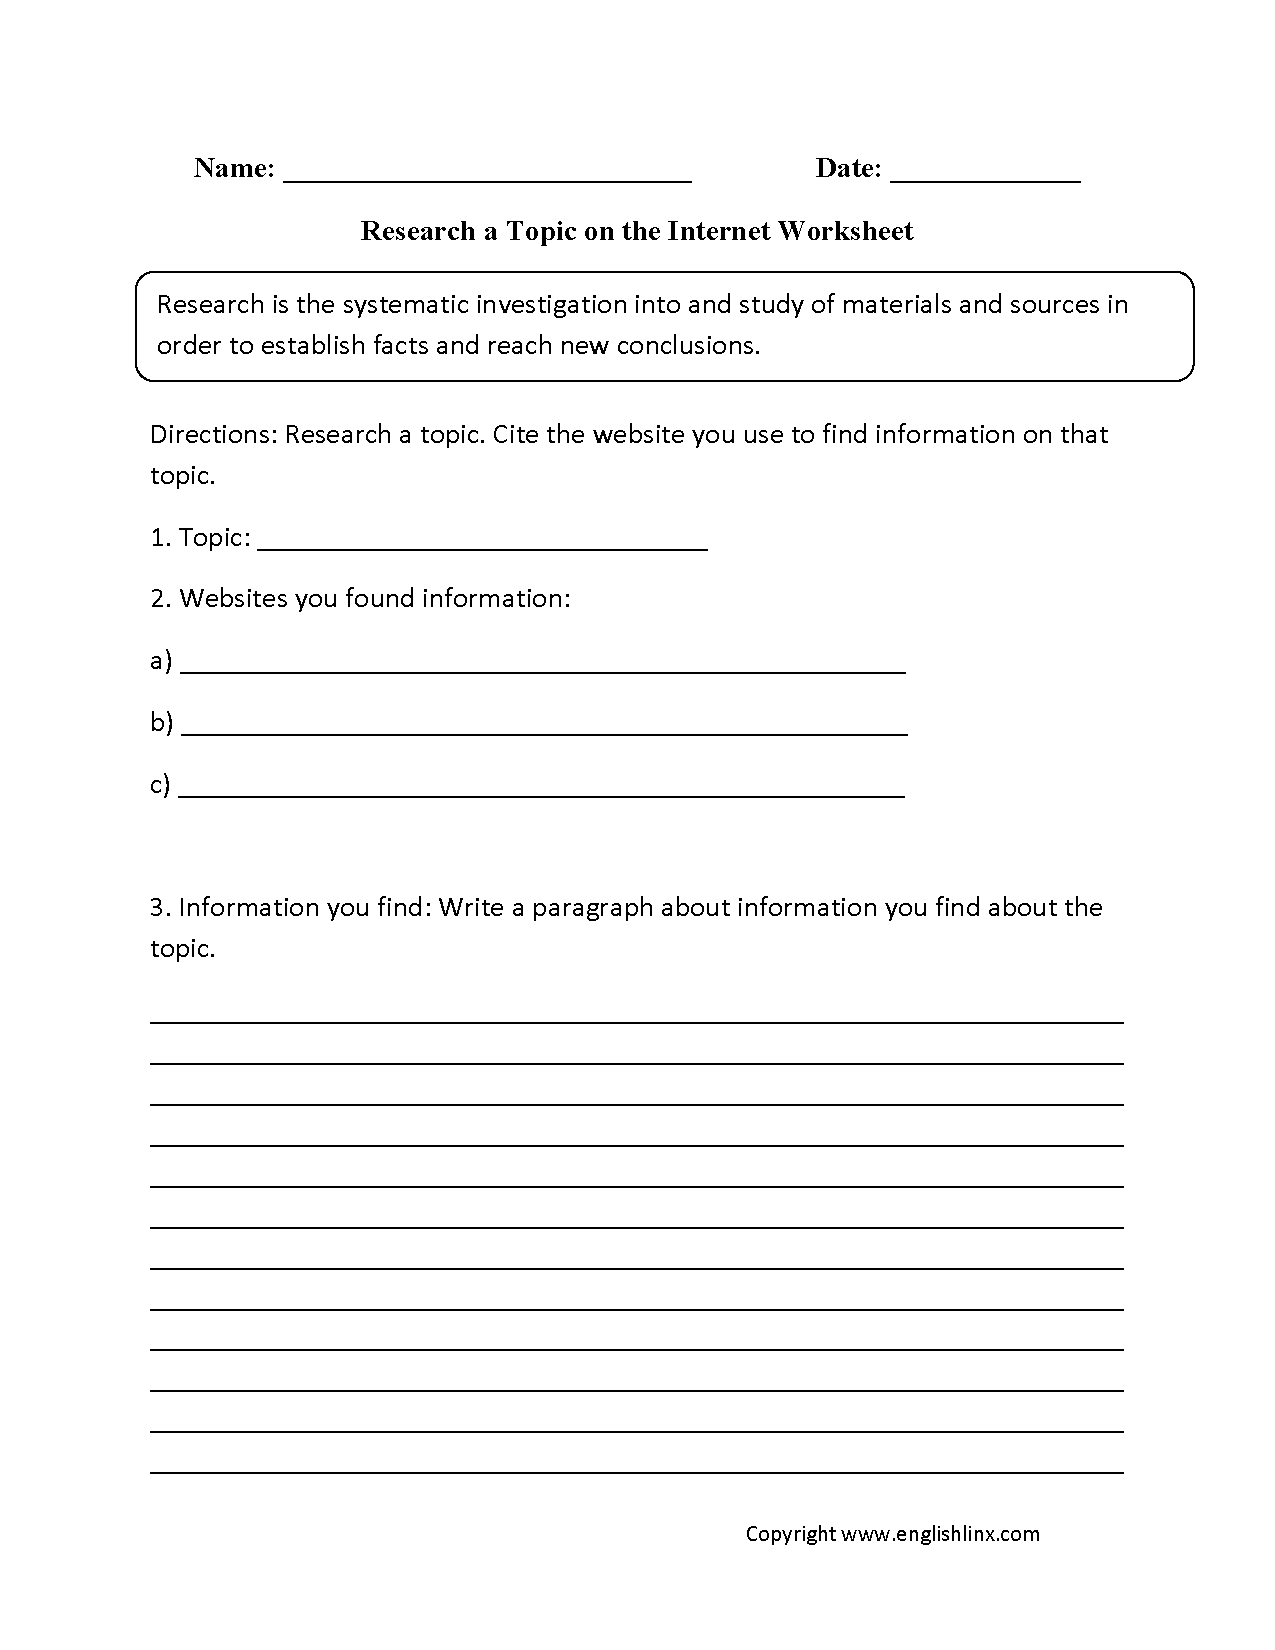 Aldiablosus  Terrific Englishlinxcom  Research Worksheets With Handsome On The Internet Worksheet With Appealing Biology Karyotype Worksheet Also Anxiety Worksheets In Addition Acceleration Worksheet And Executive Functioning Worksheets As Well As Th Grade Worksheets Additionally Graphing Rational Functions Worksheet And Answers From Englishlinxcom With Aldiablosus  Handsome Englishlinxcom  Research Worksheets With Appealing On The Internet Worksheet And Terrific Biology Karyotype Worksheet Also Anxiety Worksheets In Addition Acceleration Worksheet From Englishlinxcom